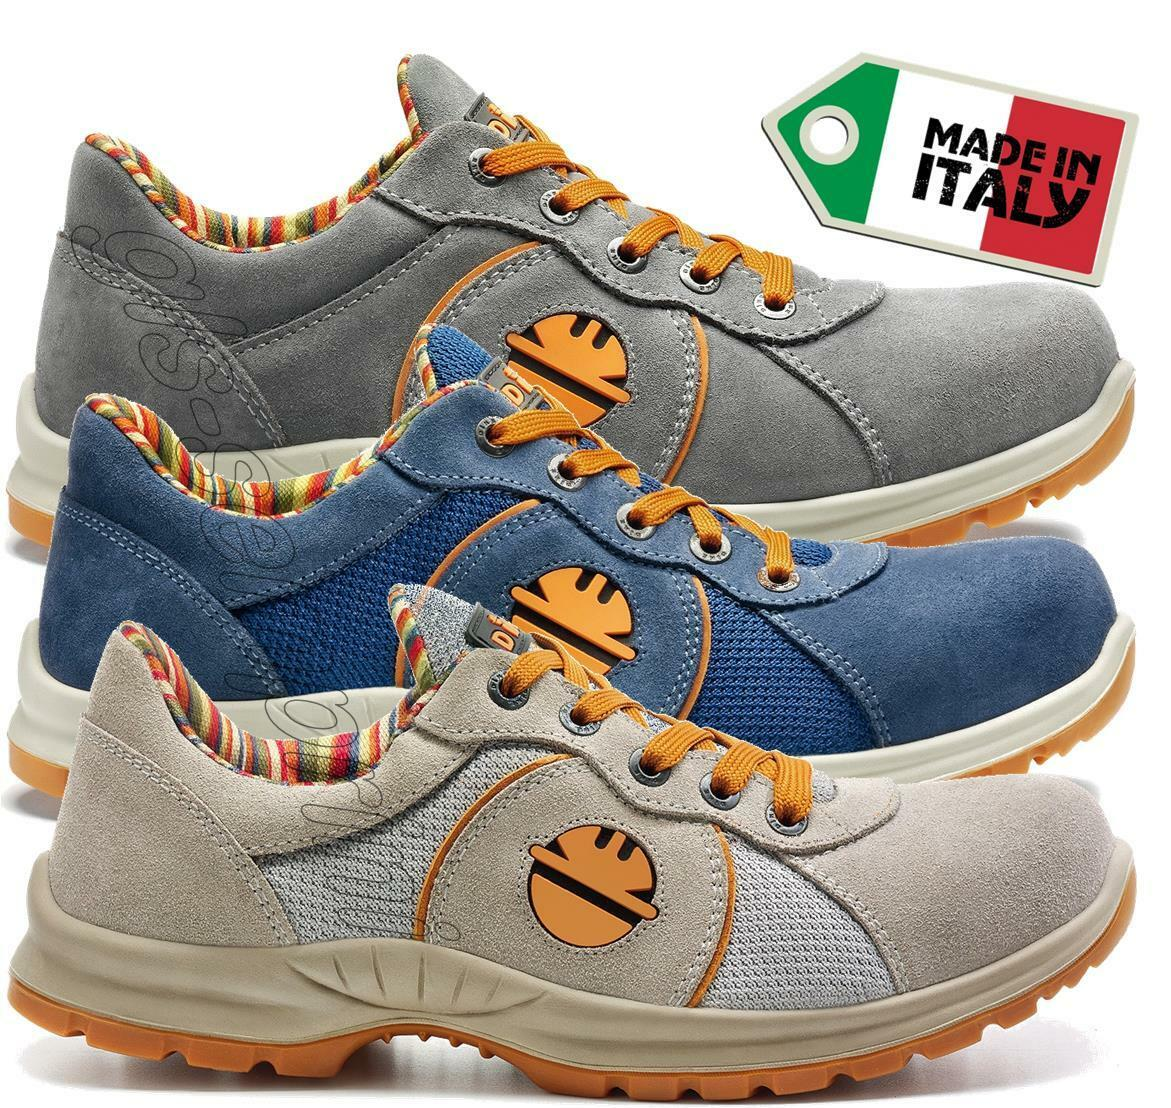 MENS LEATHER WORK SAFETY SHOES TRAINERS TOE CAP DIKE ADVANCE S1P SRC 23716